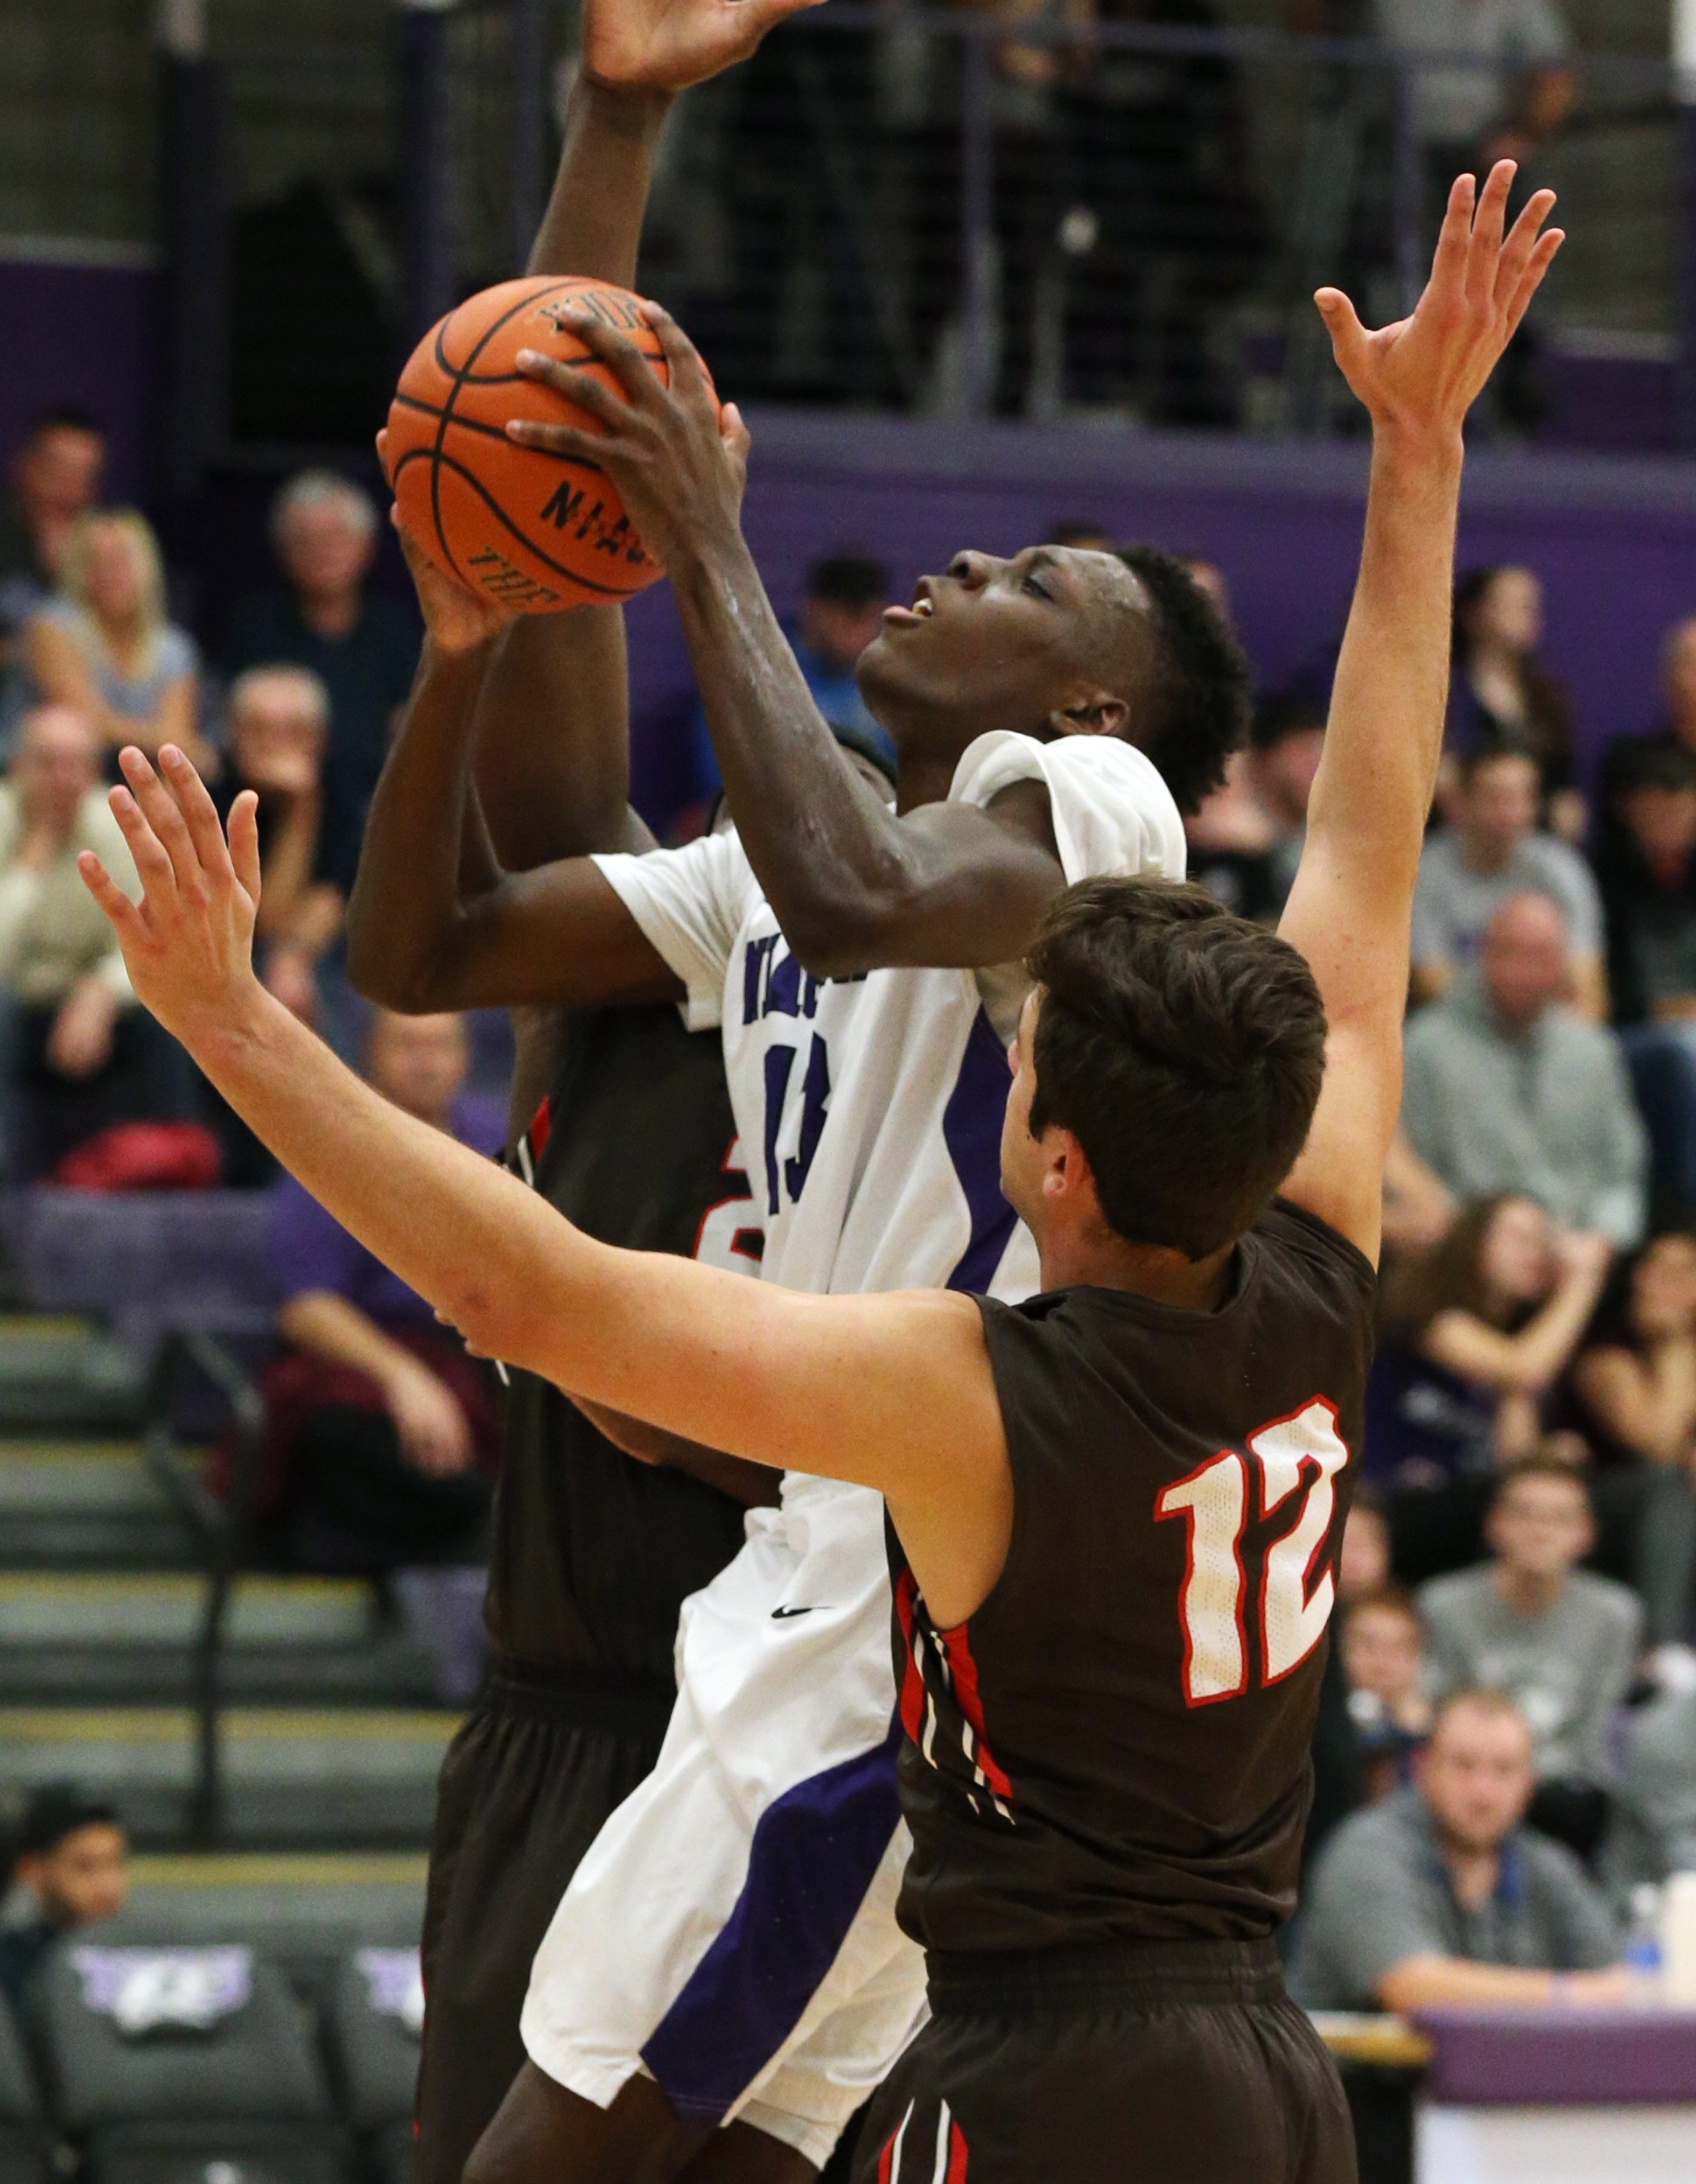 Matt Scott drives to the basket against Brown's JR Hobbie in the first half during their game at the Gallagher Center on Wednesday. The Purple Eagles won, 75-66.